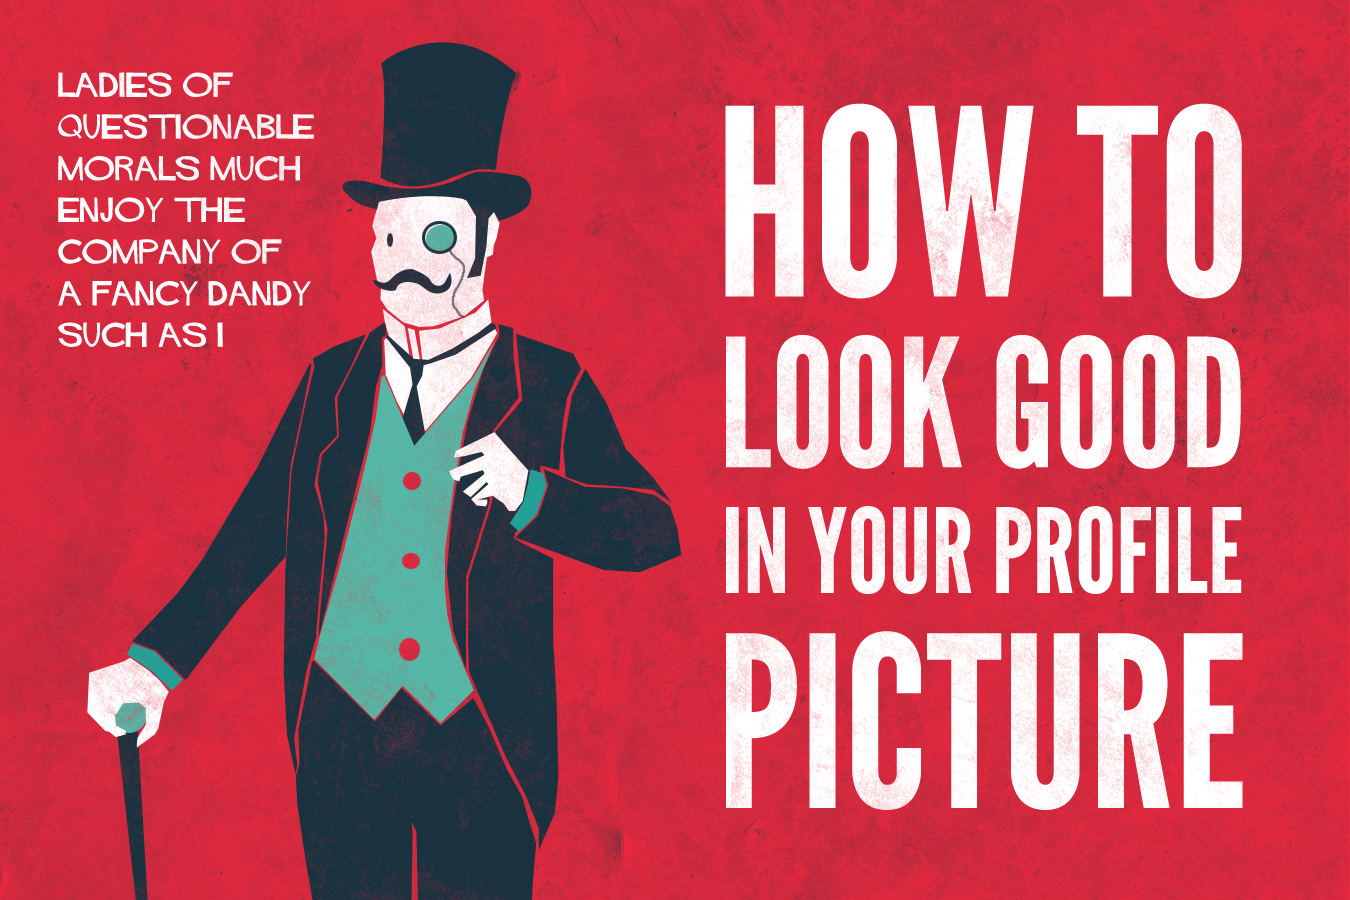 How to look good in your profile picture